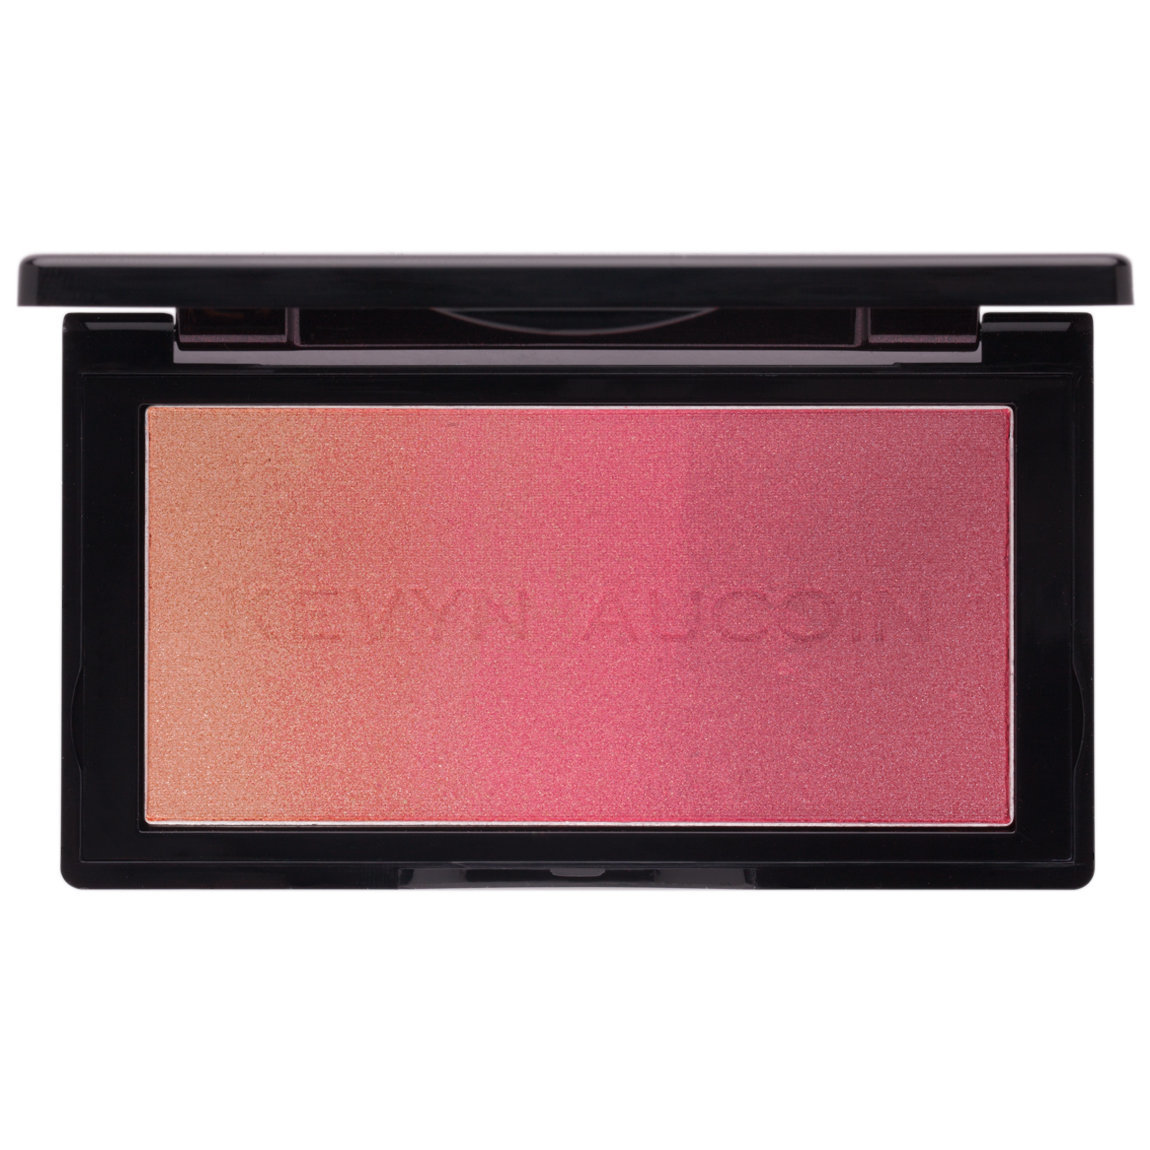 Kevyn Aucoin The Neo-Blush Rose Cliff product swatch.